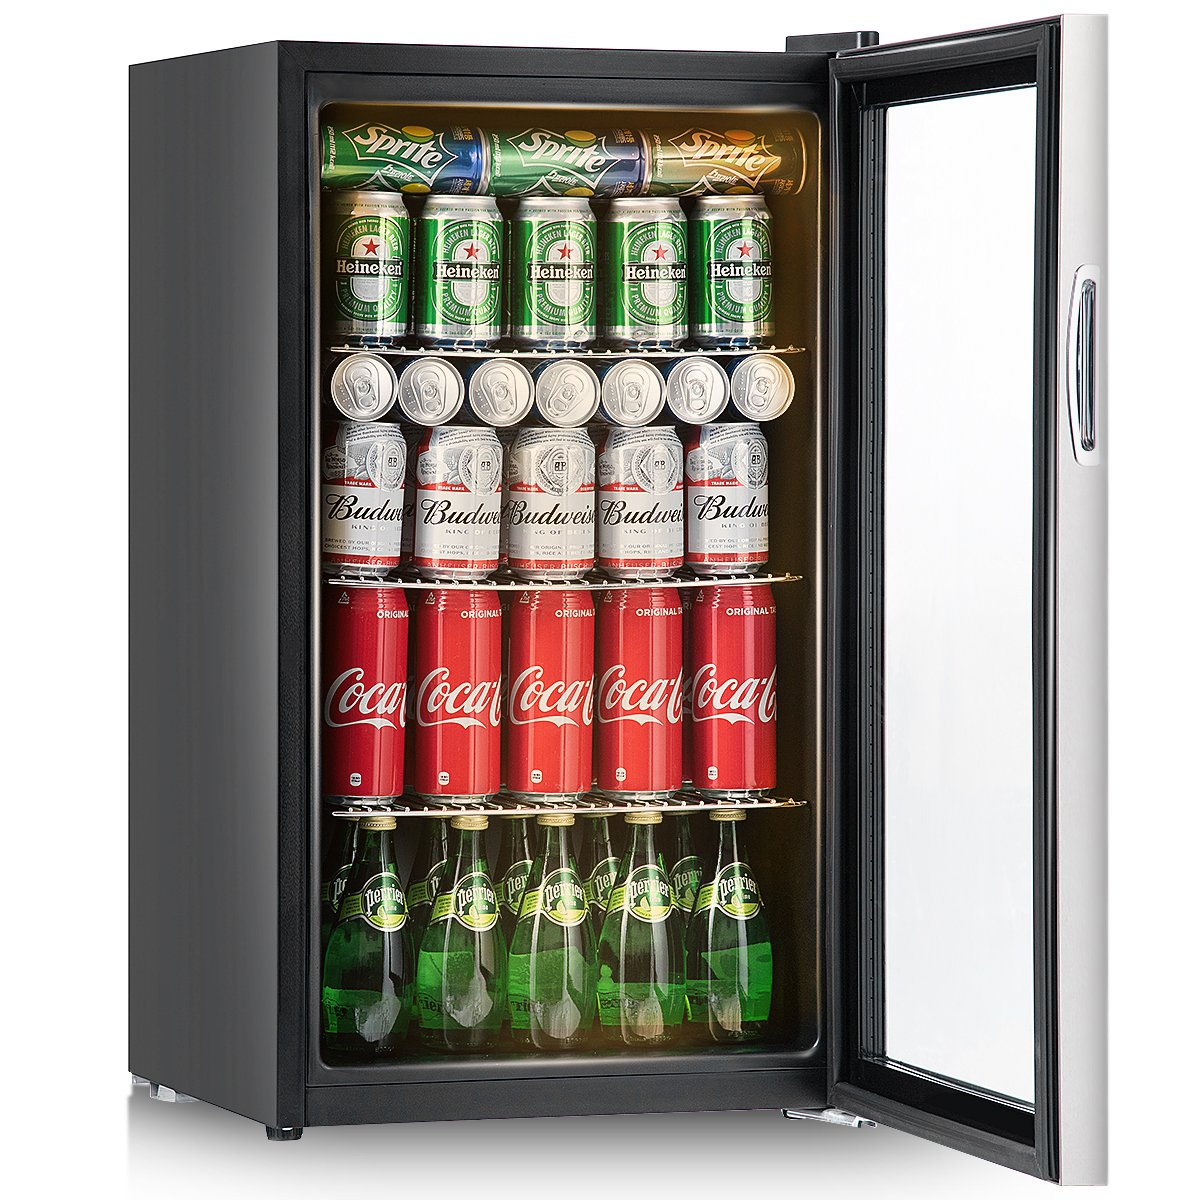 Costway 60 Can Beverage Refrigerator and Cooler Mini Fridge with Glass Door for Soda Beer or Wine Small Drink Dispenser Machine for Office or Bar (60 Can)